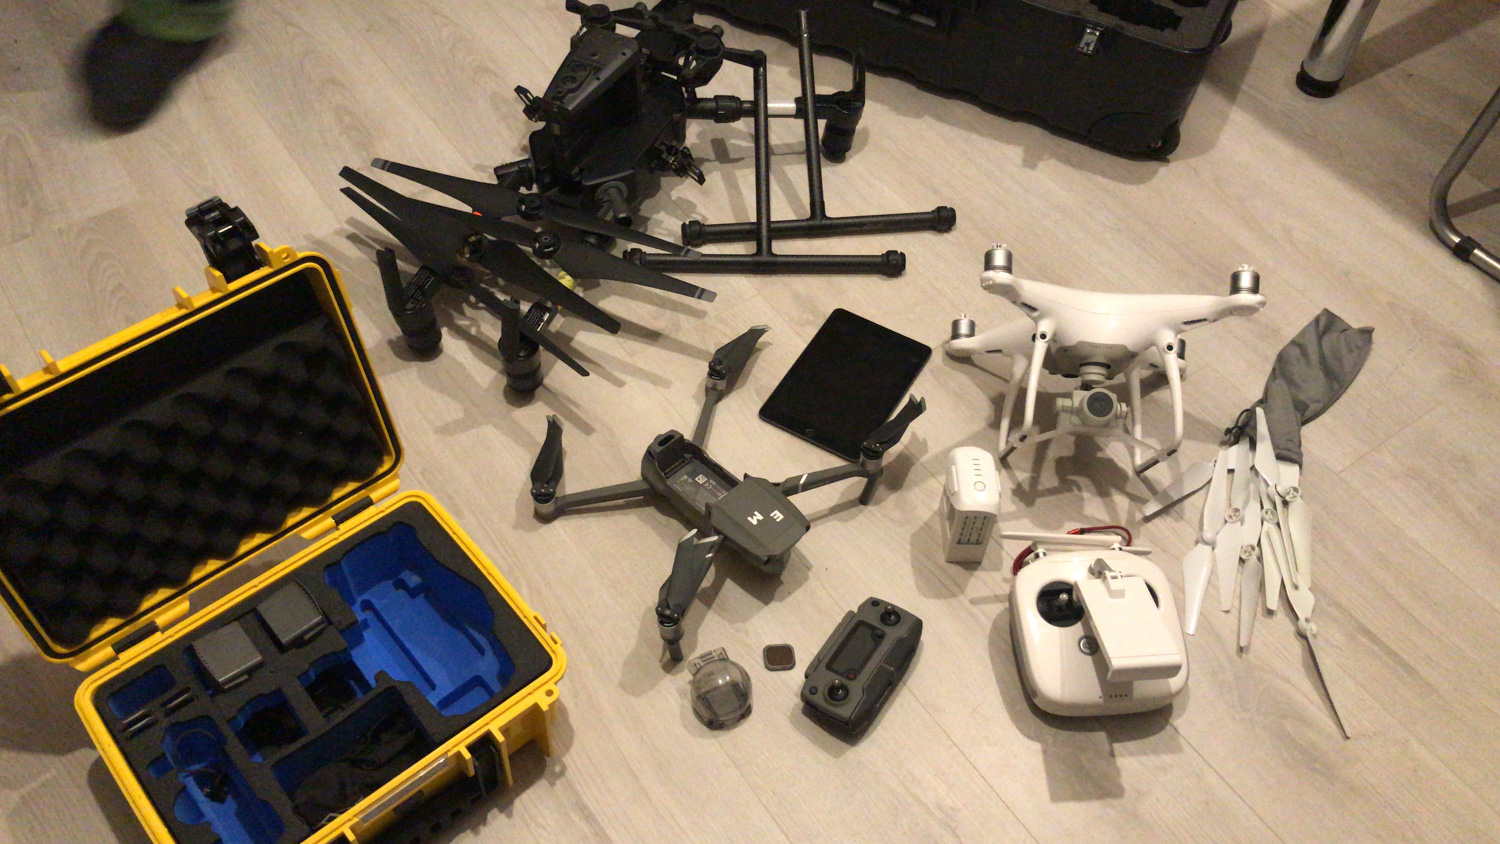 drone_filming_aerial_imagery_north_wales_drone_experts-4.jpg